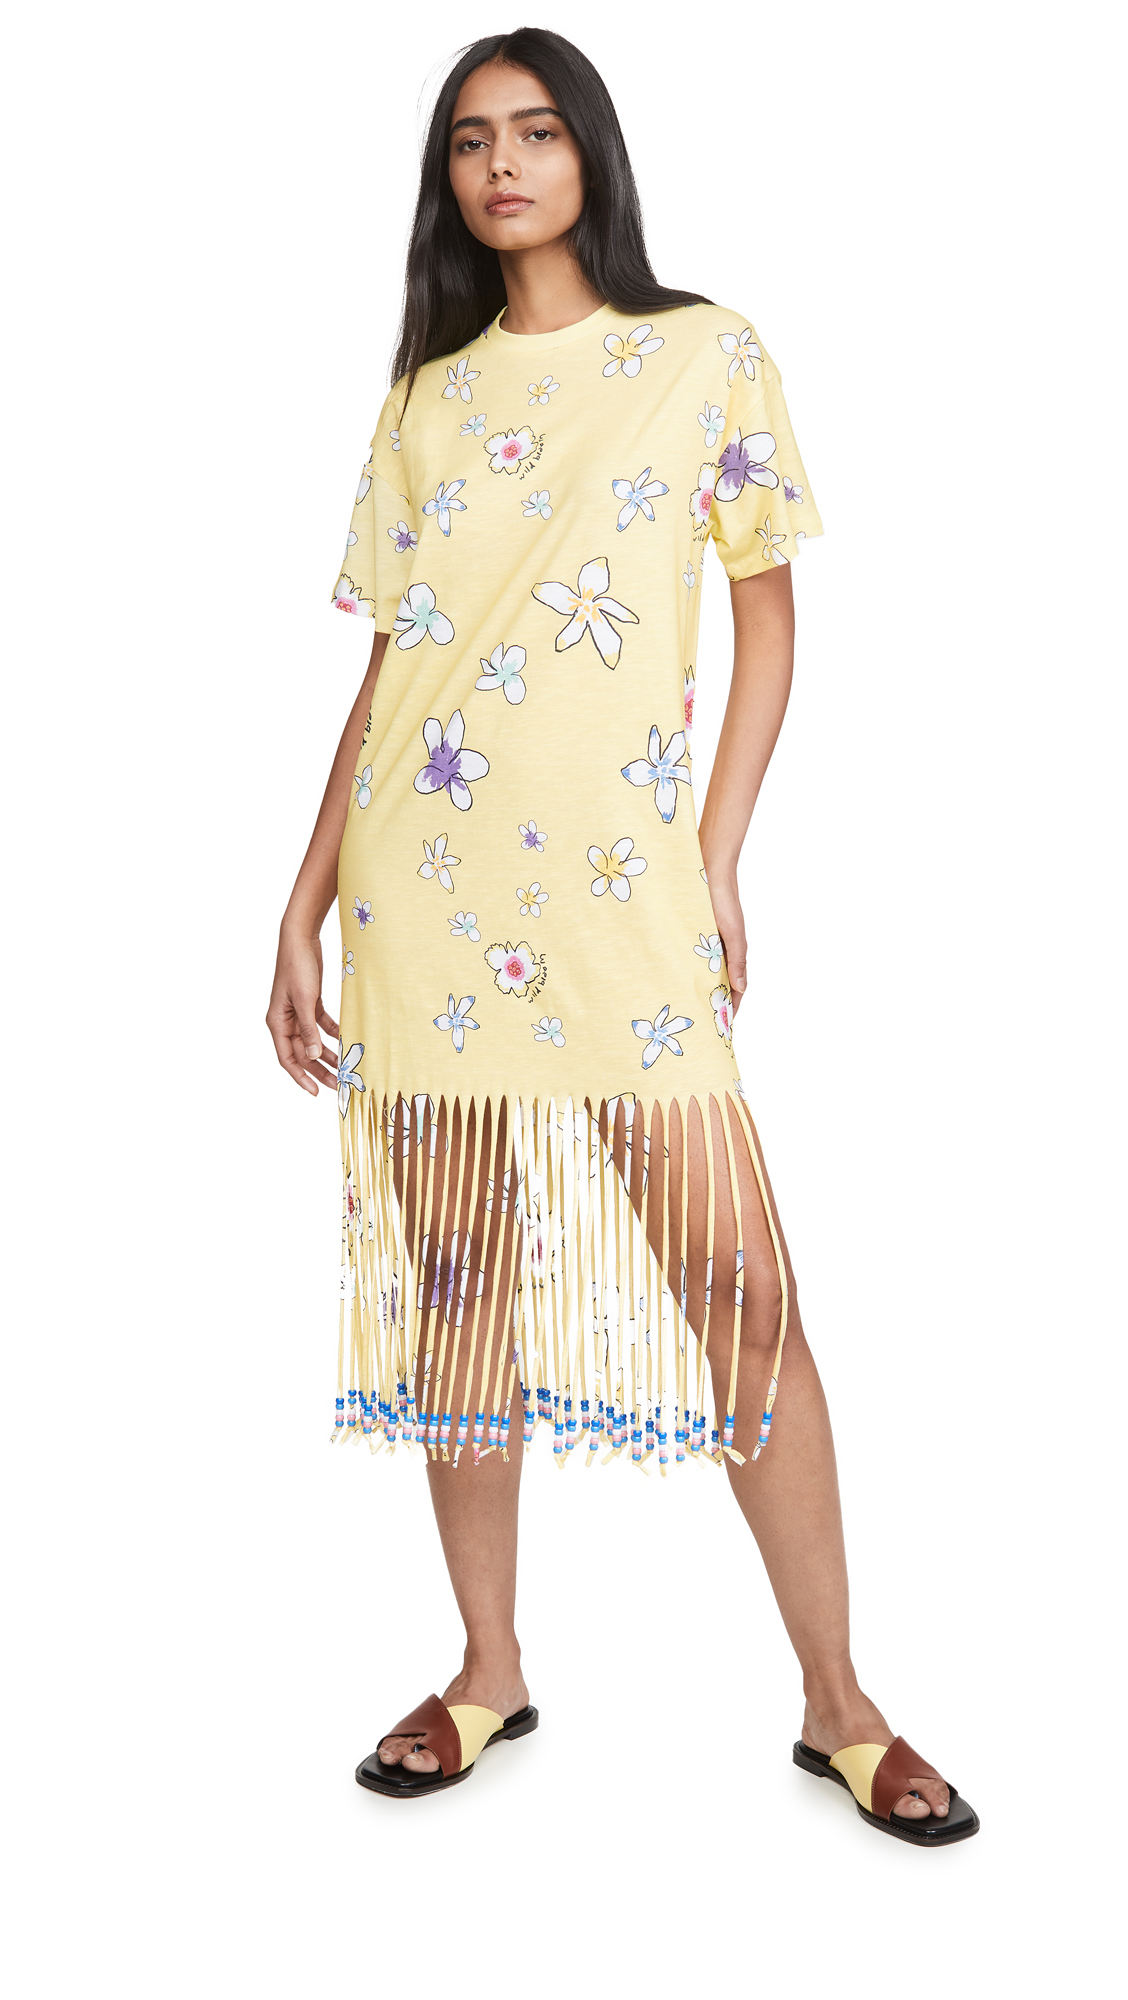 Mira Mikati Floral Print Fringe Beaded T-Shirt Dress - 40% Off Sale